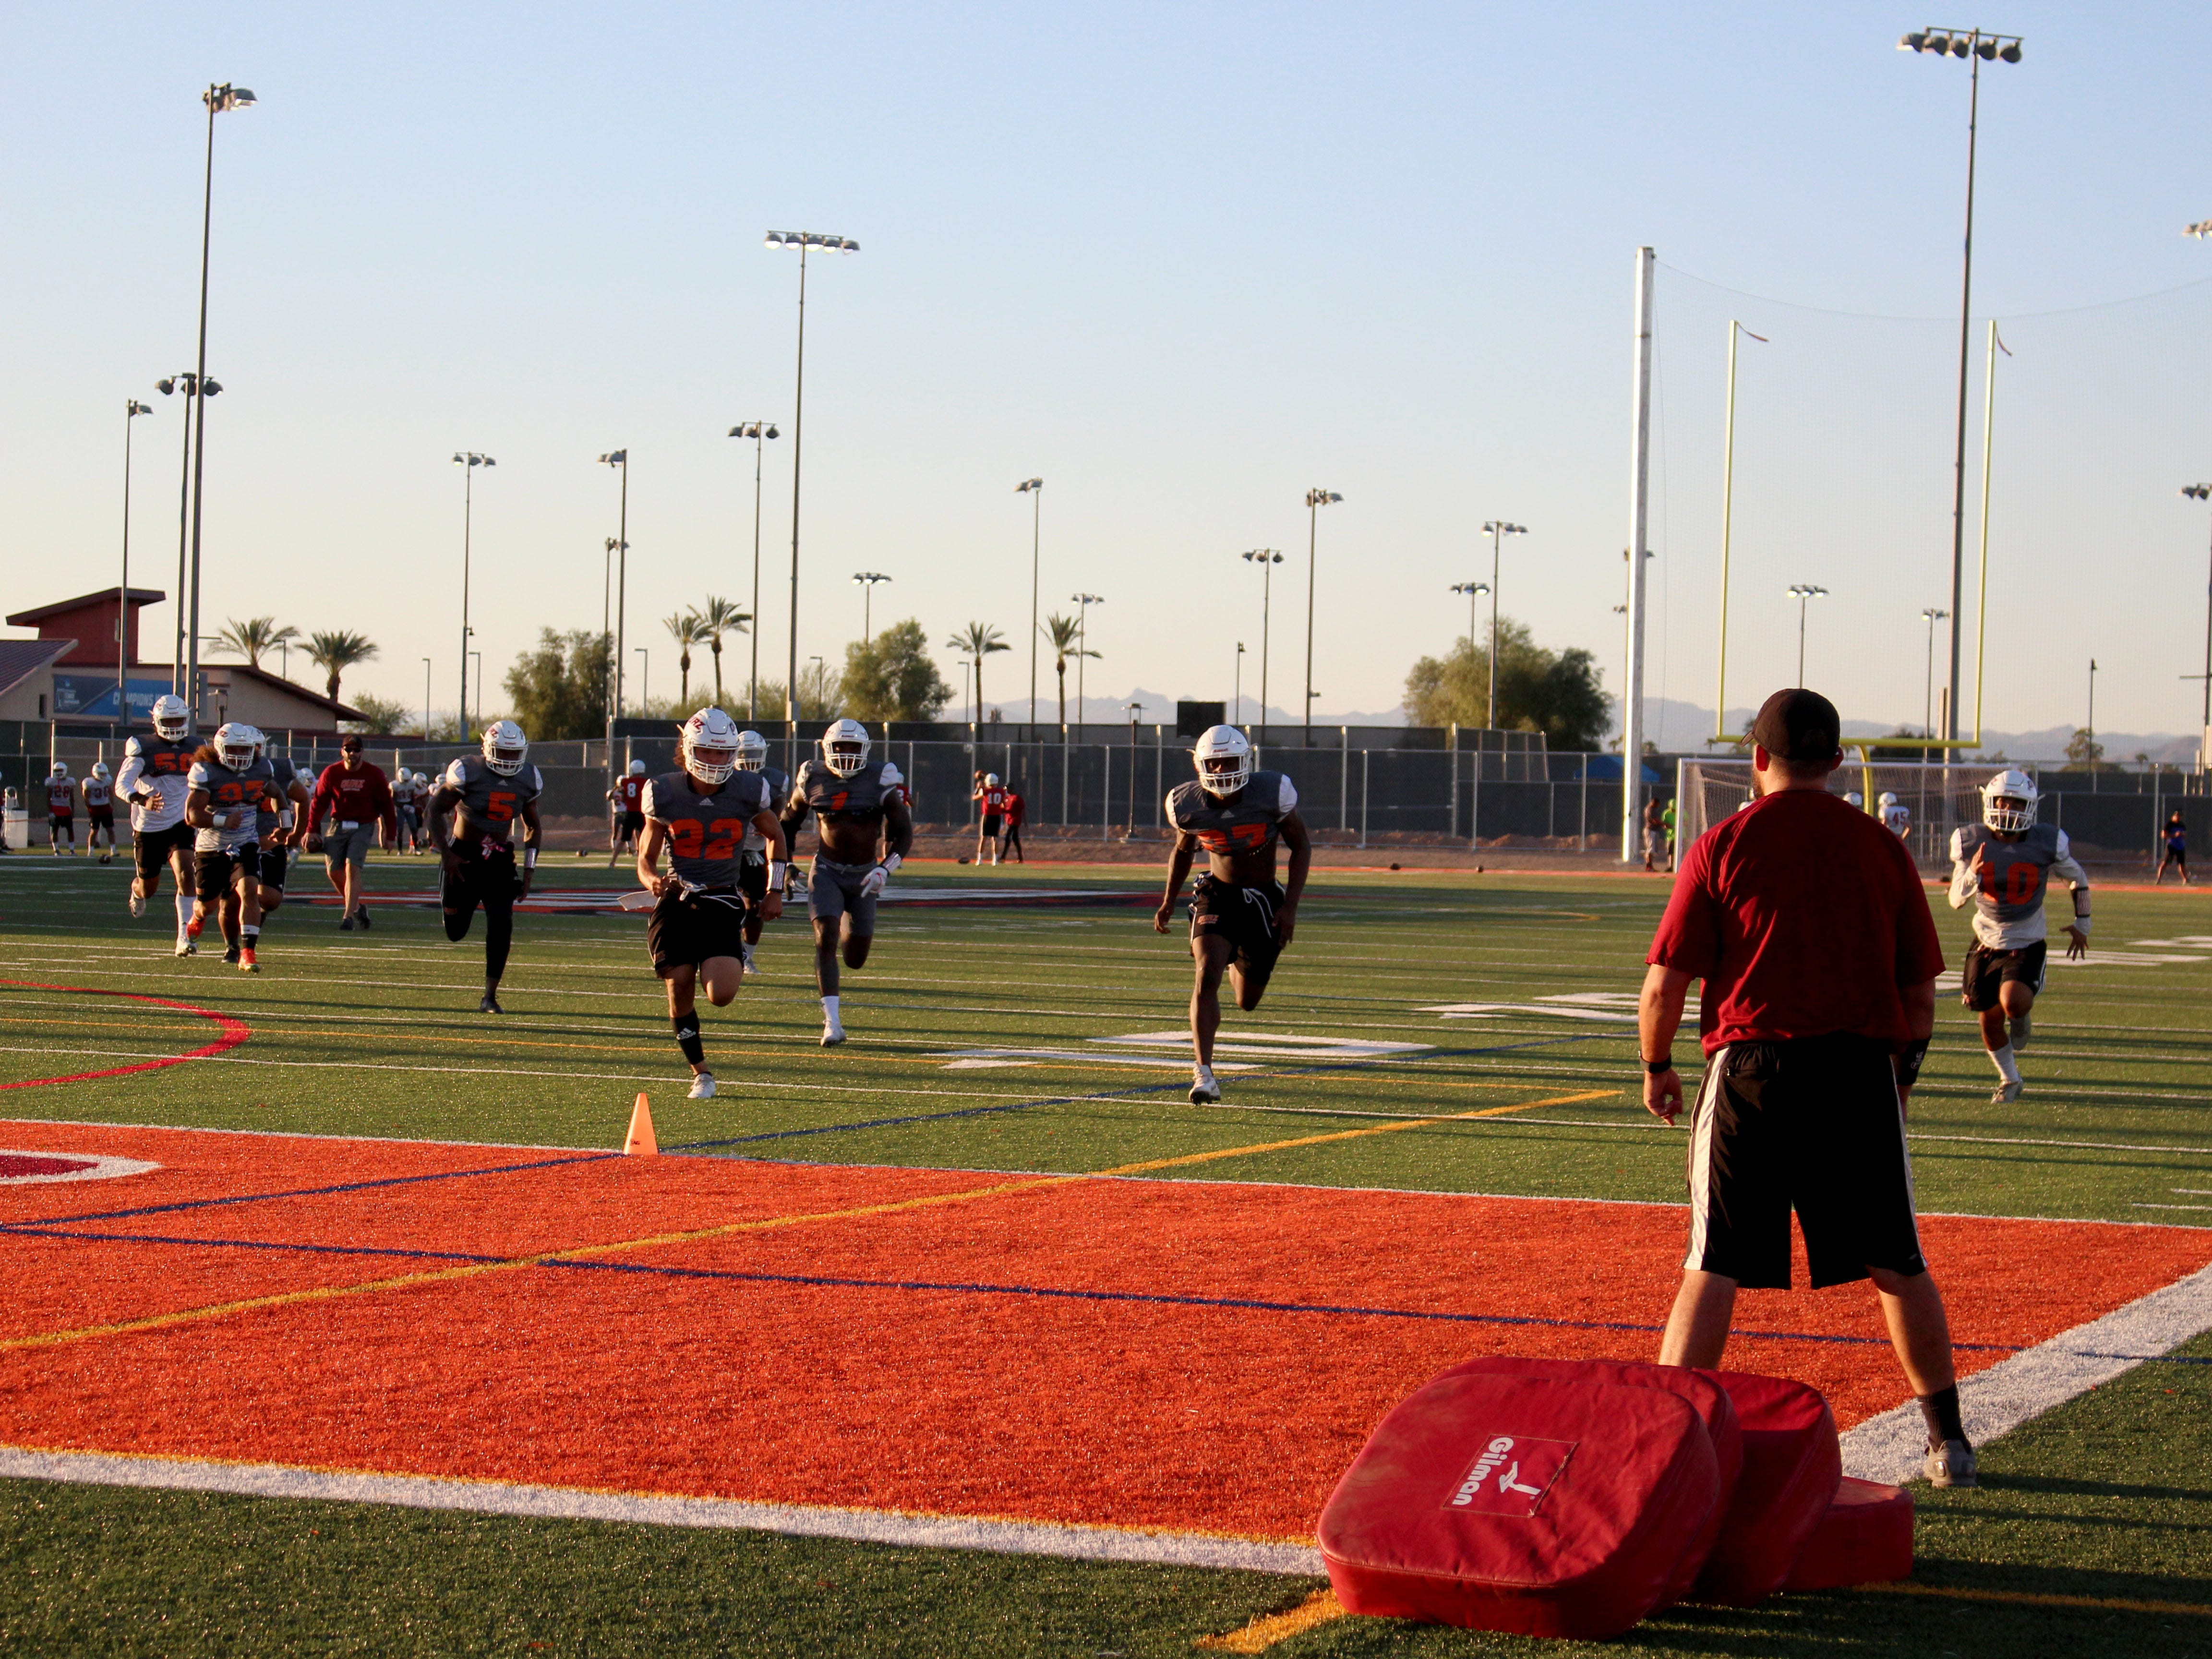 OUAZ practices a pursuit drill on Tuesday night in Surprise on Sept. 11, 2018.